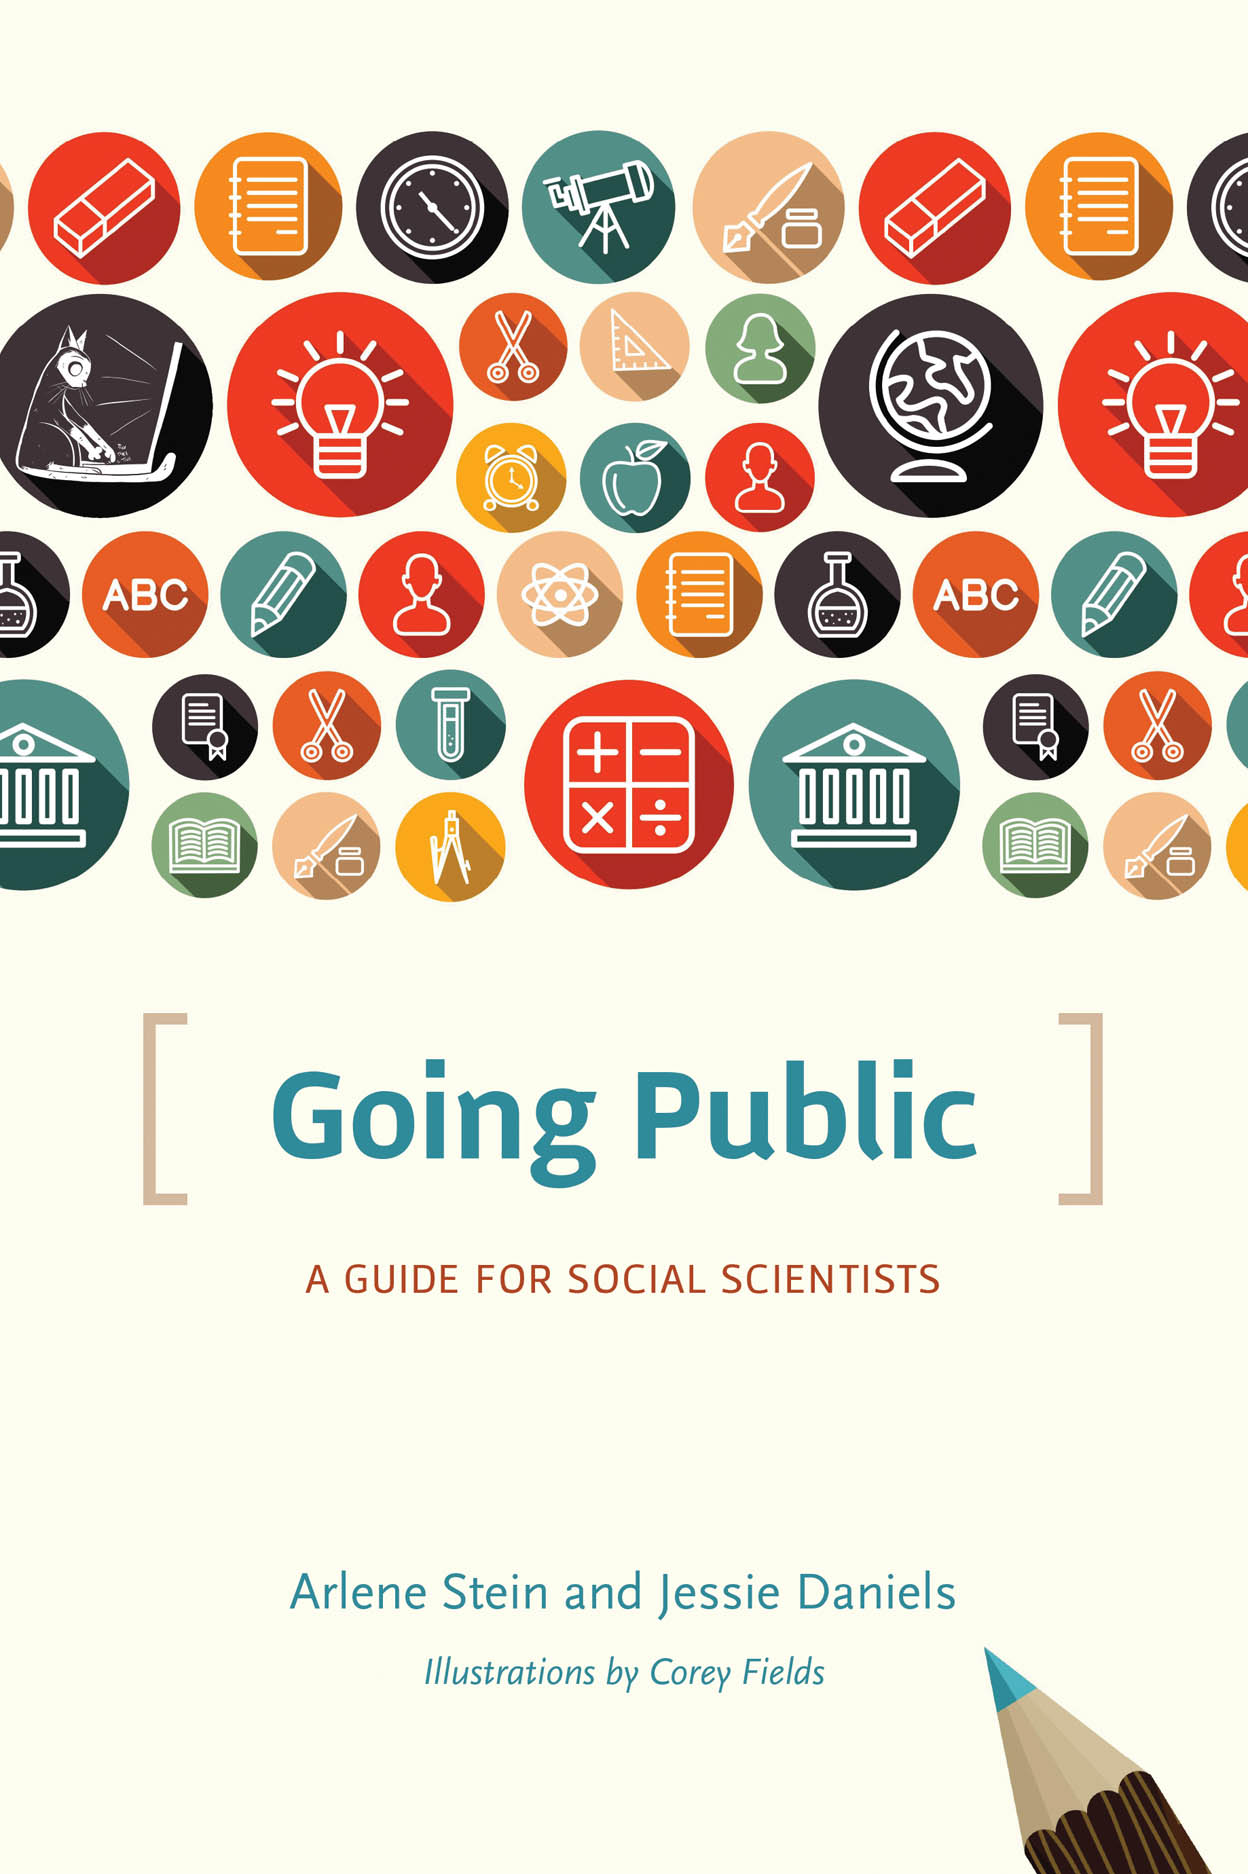 Going Public: A Guide for Social Scientists